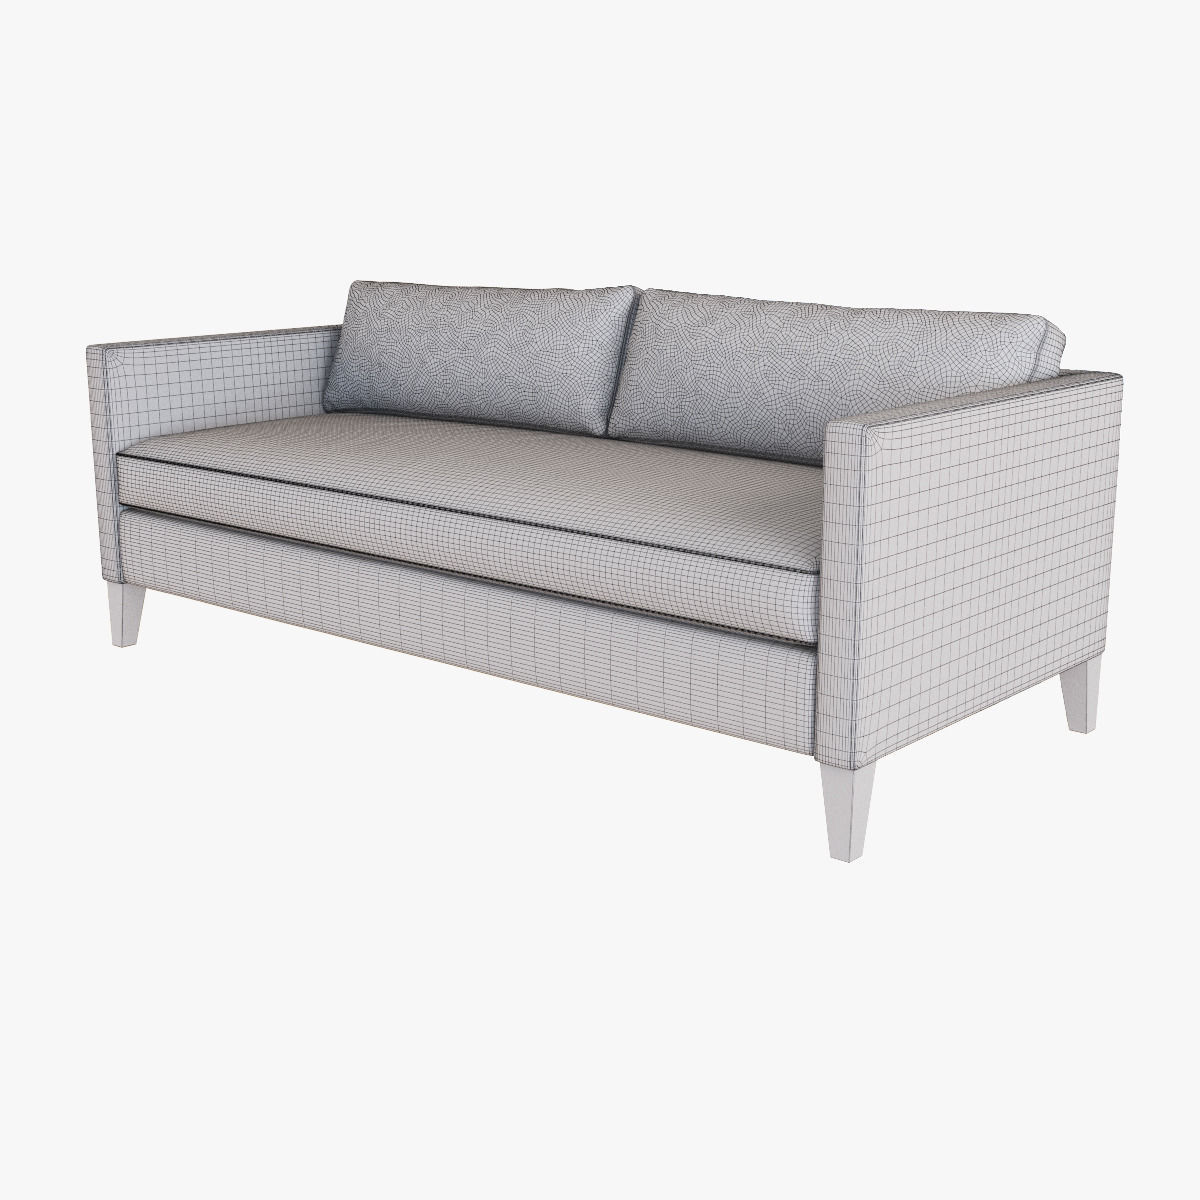 dunham sofa sofas direct un model home the honoroak